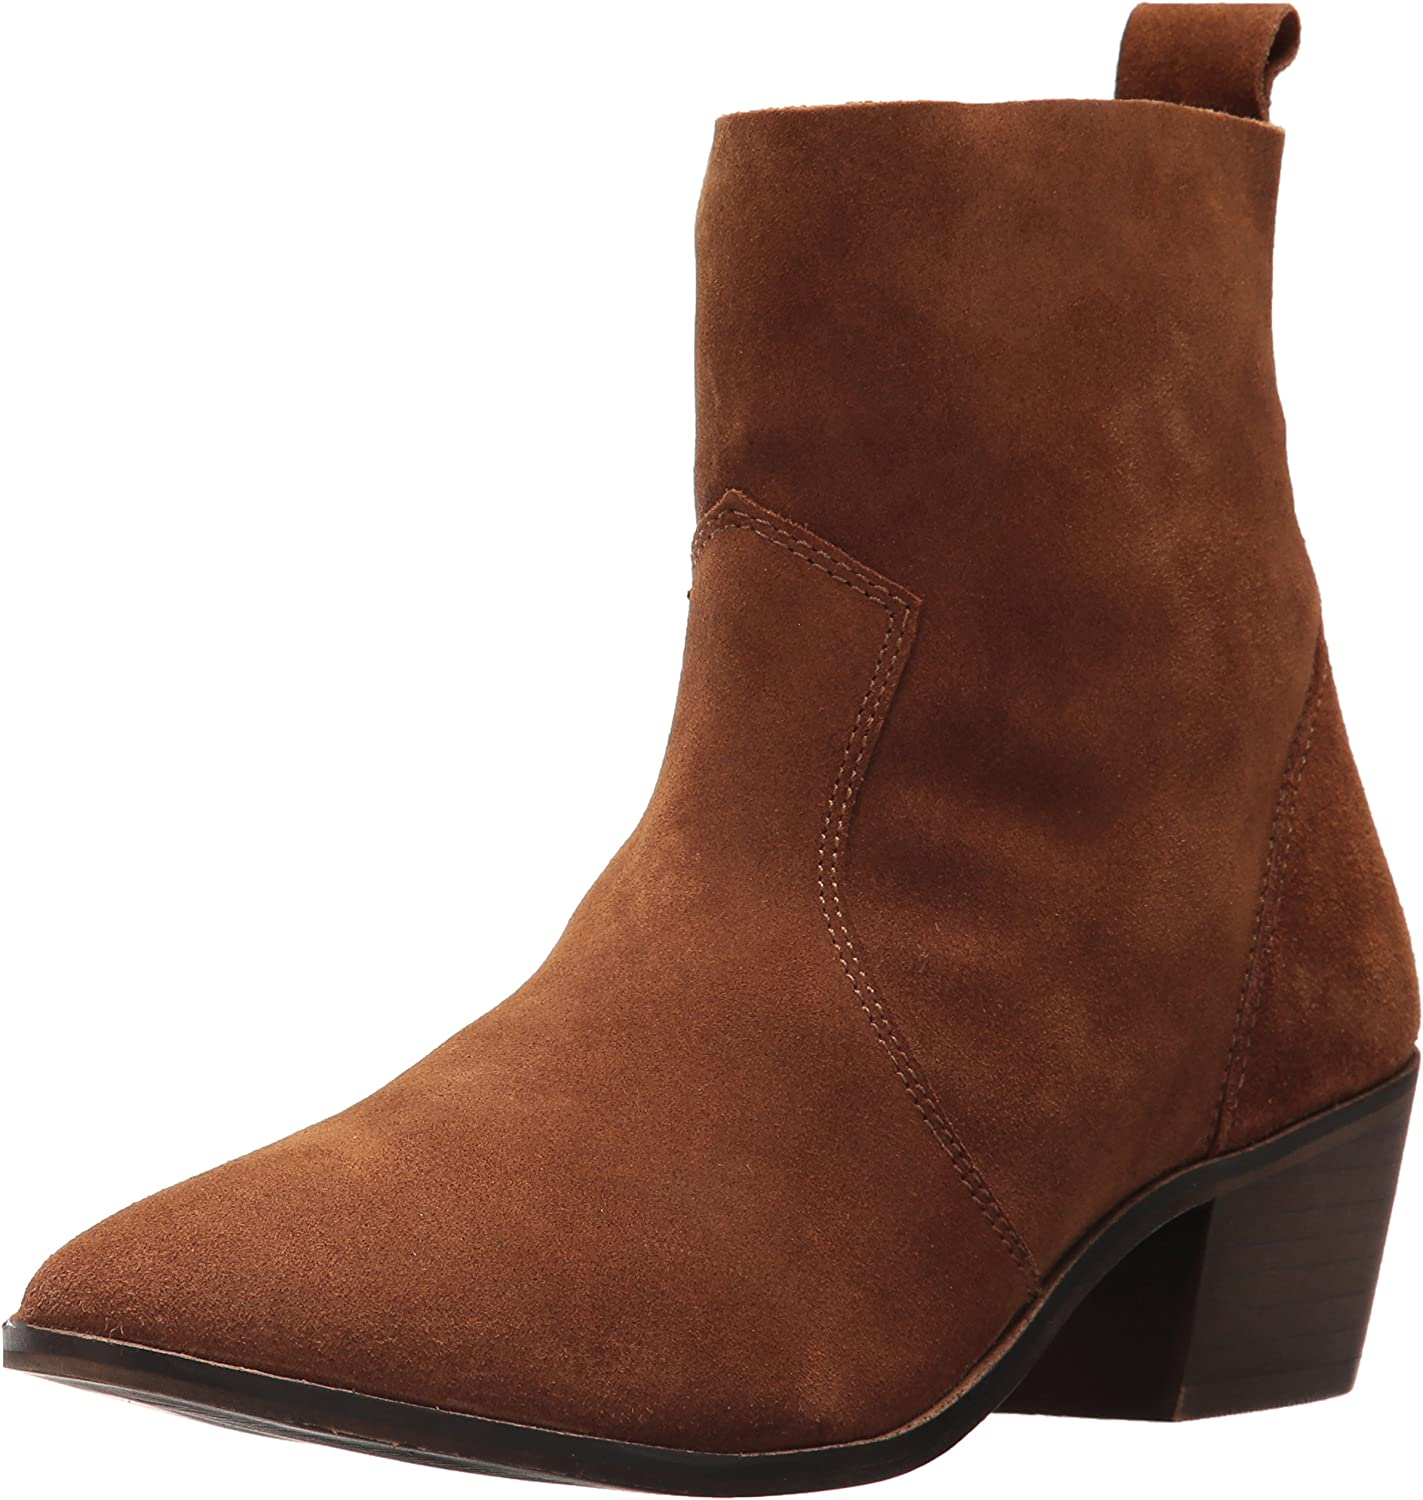 Report Womens Iesha Ankle Bootie